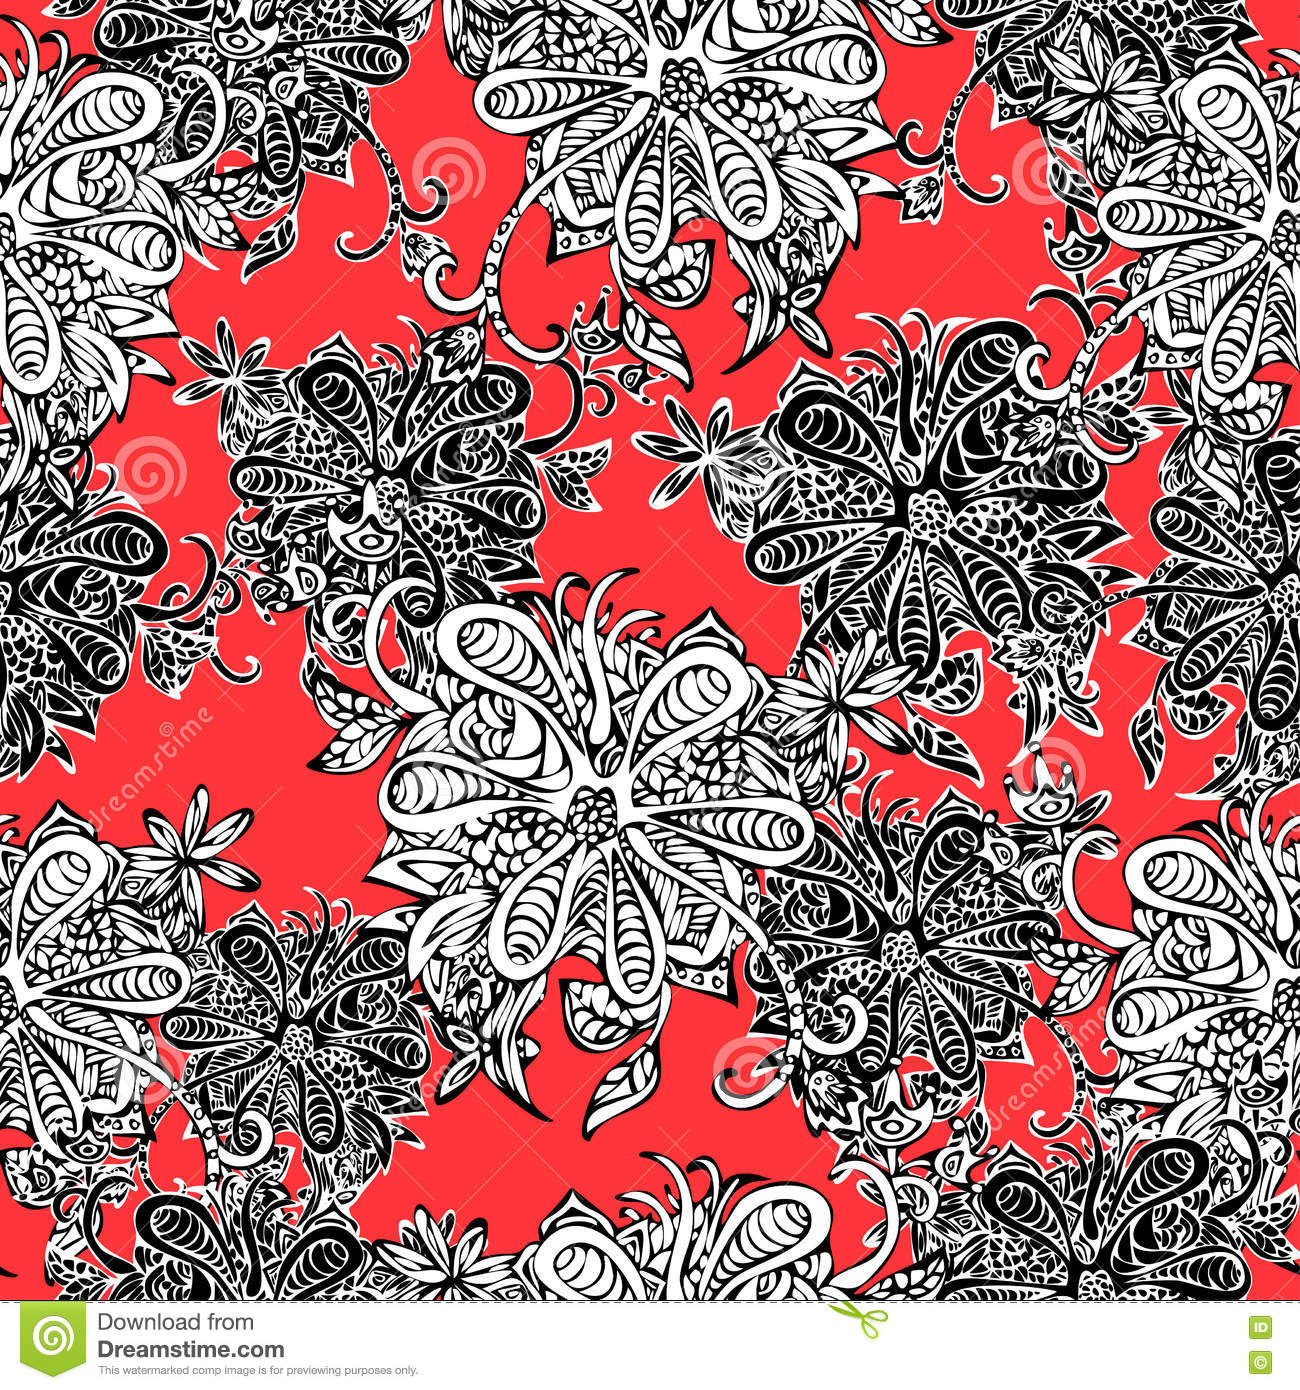 Abstract Flowers Seamless Pattern Doodle Sketch Black And White